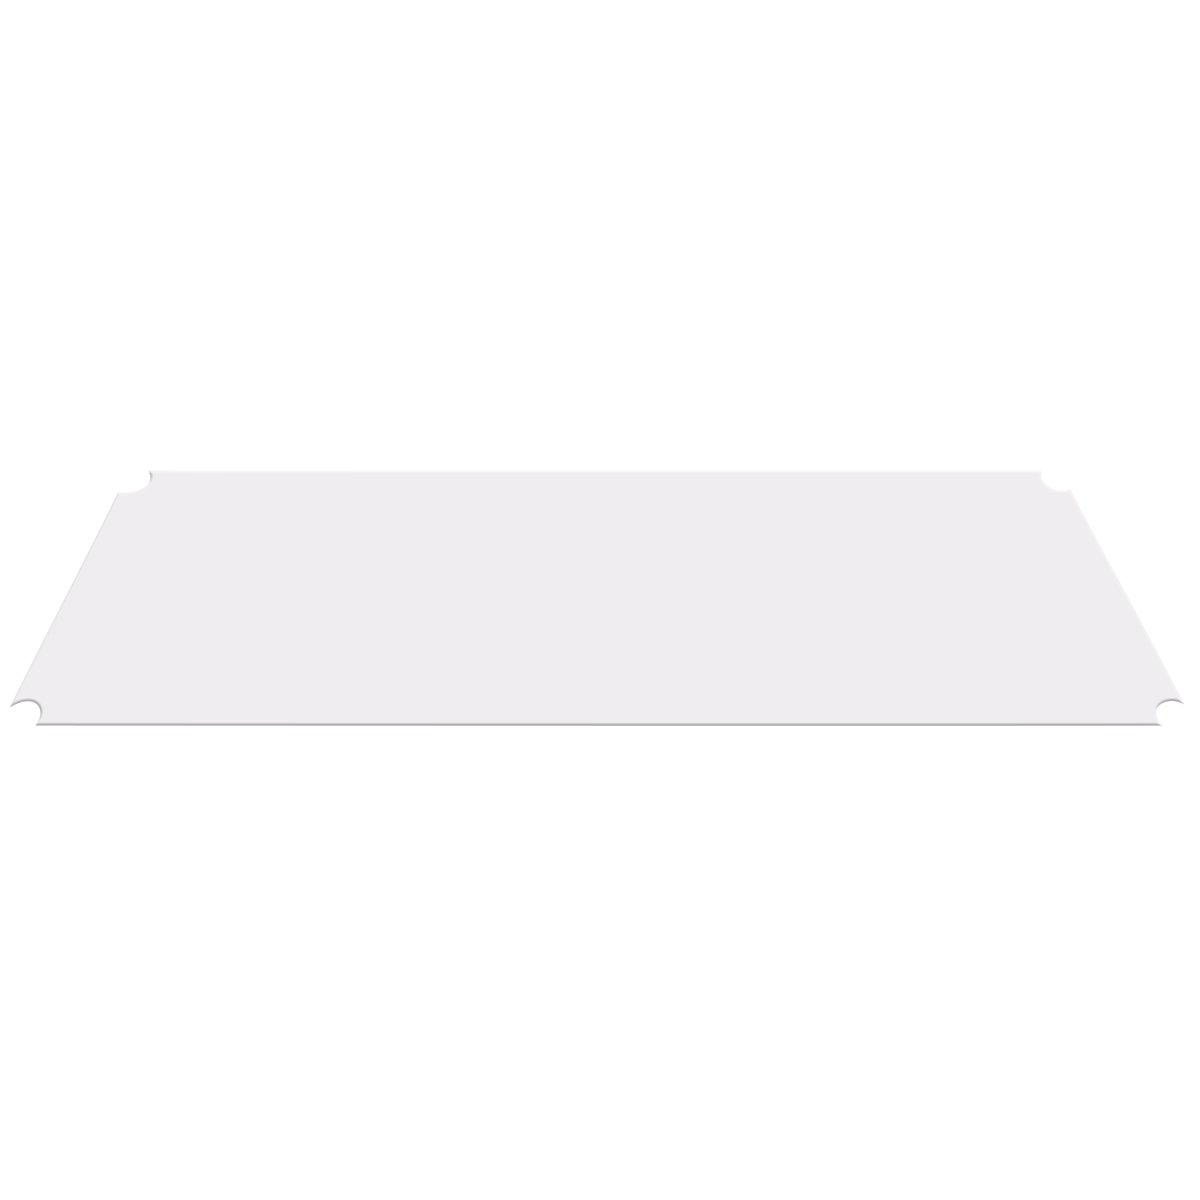 AKRO-MILS  AW1848LINER - Clear Shelf Liner for 18-inch X 48-inch Chrome Wire Shelf - Pack of 4 by Akro-Mils